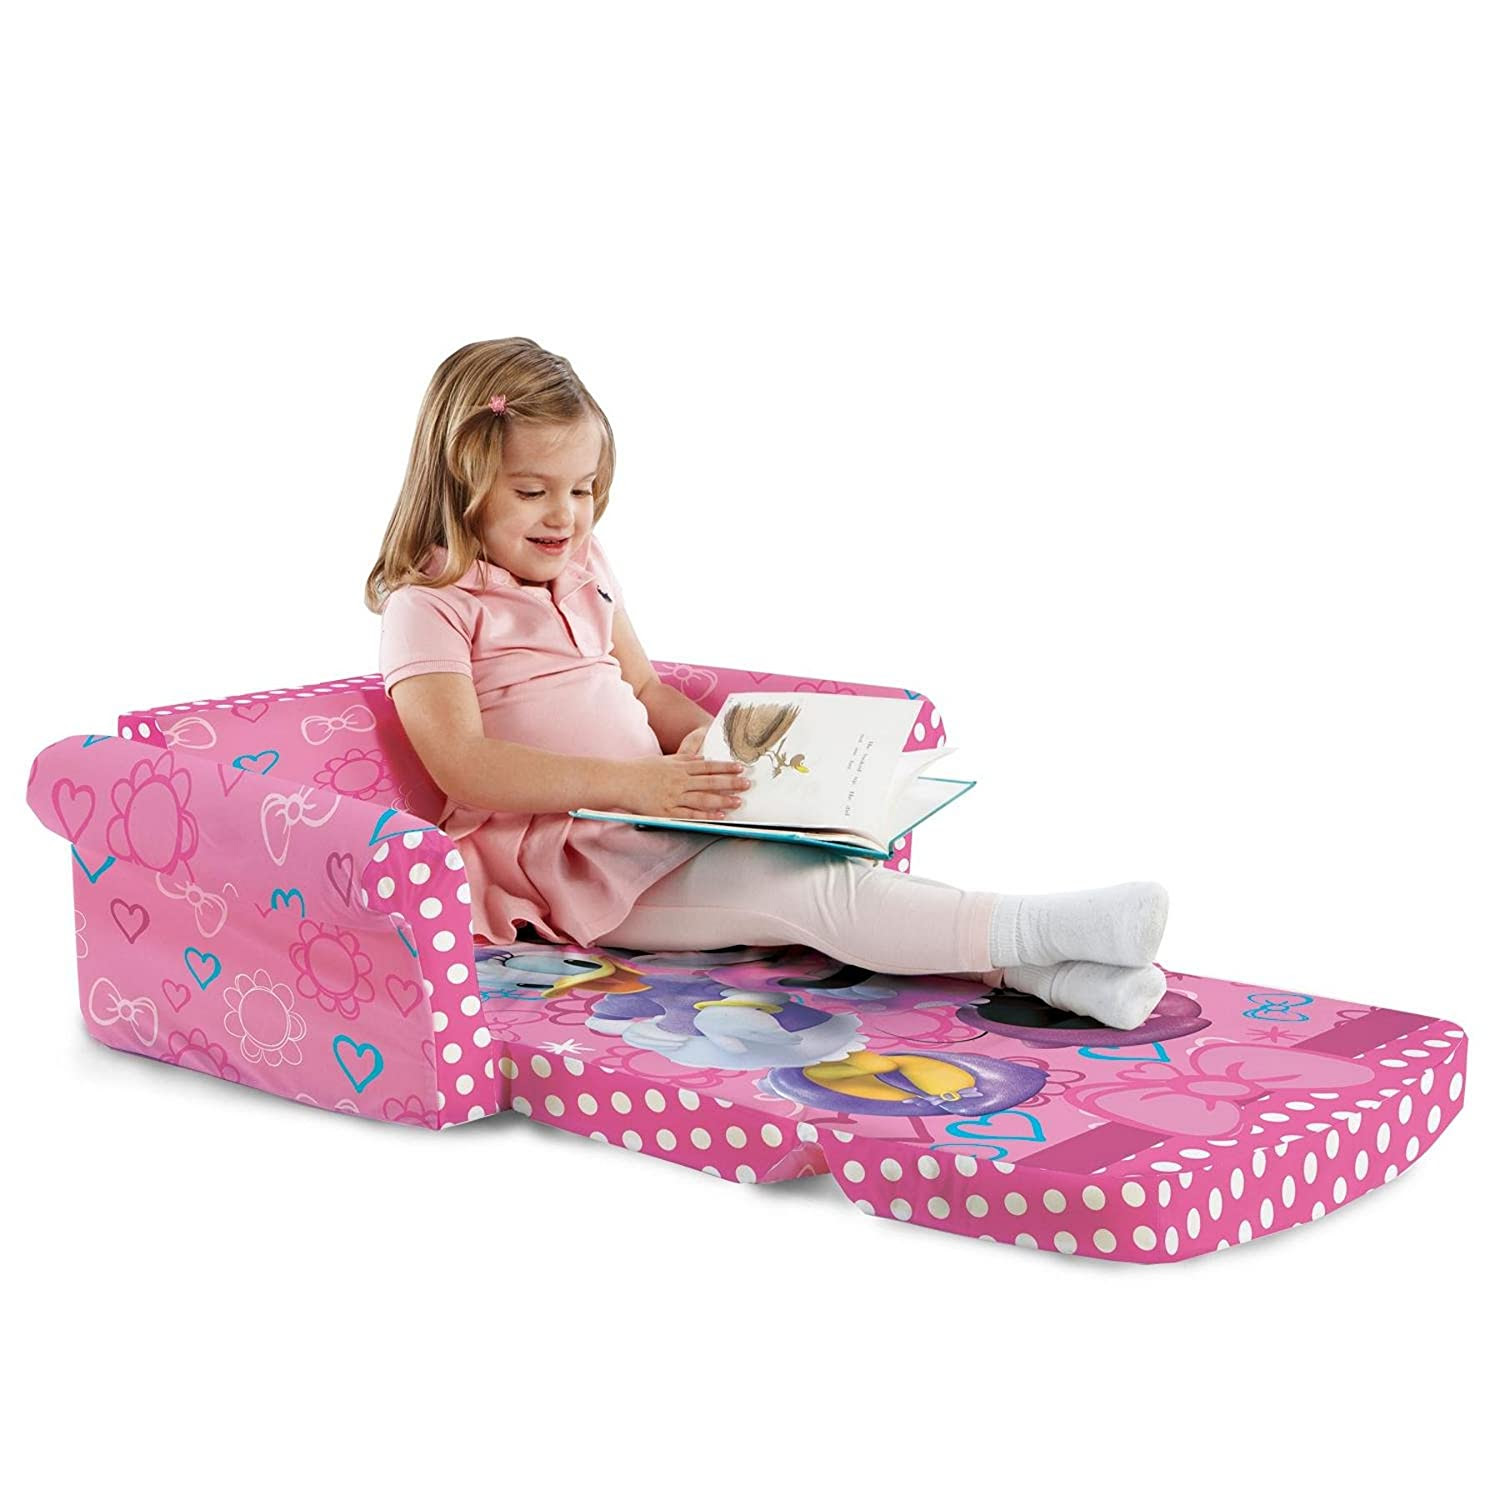 GIFT IDEAS FOR KIDS: FLIP OPEN SOFAS